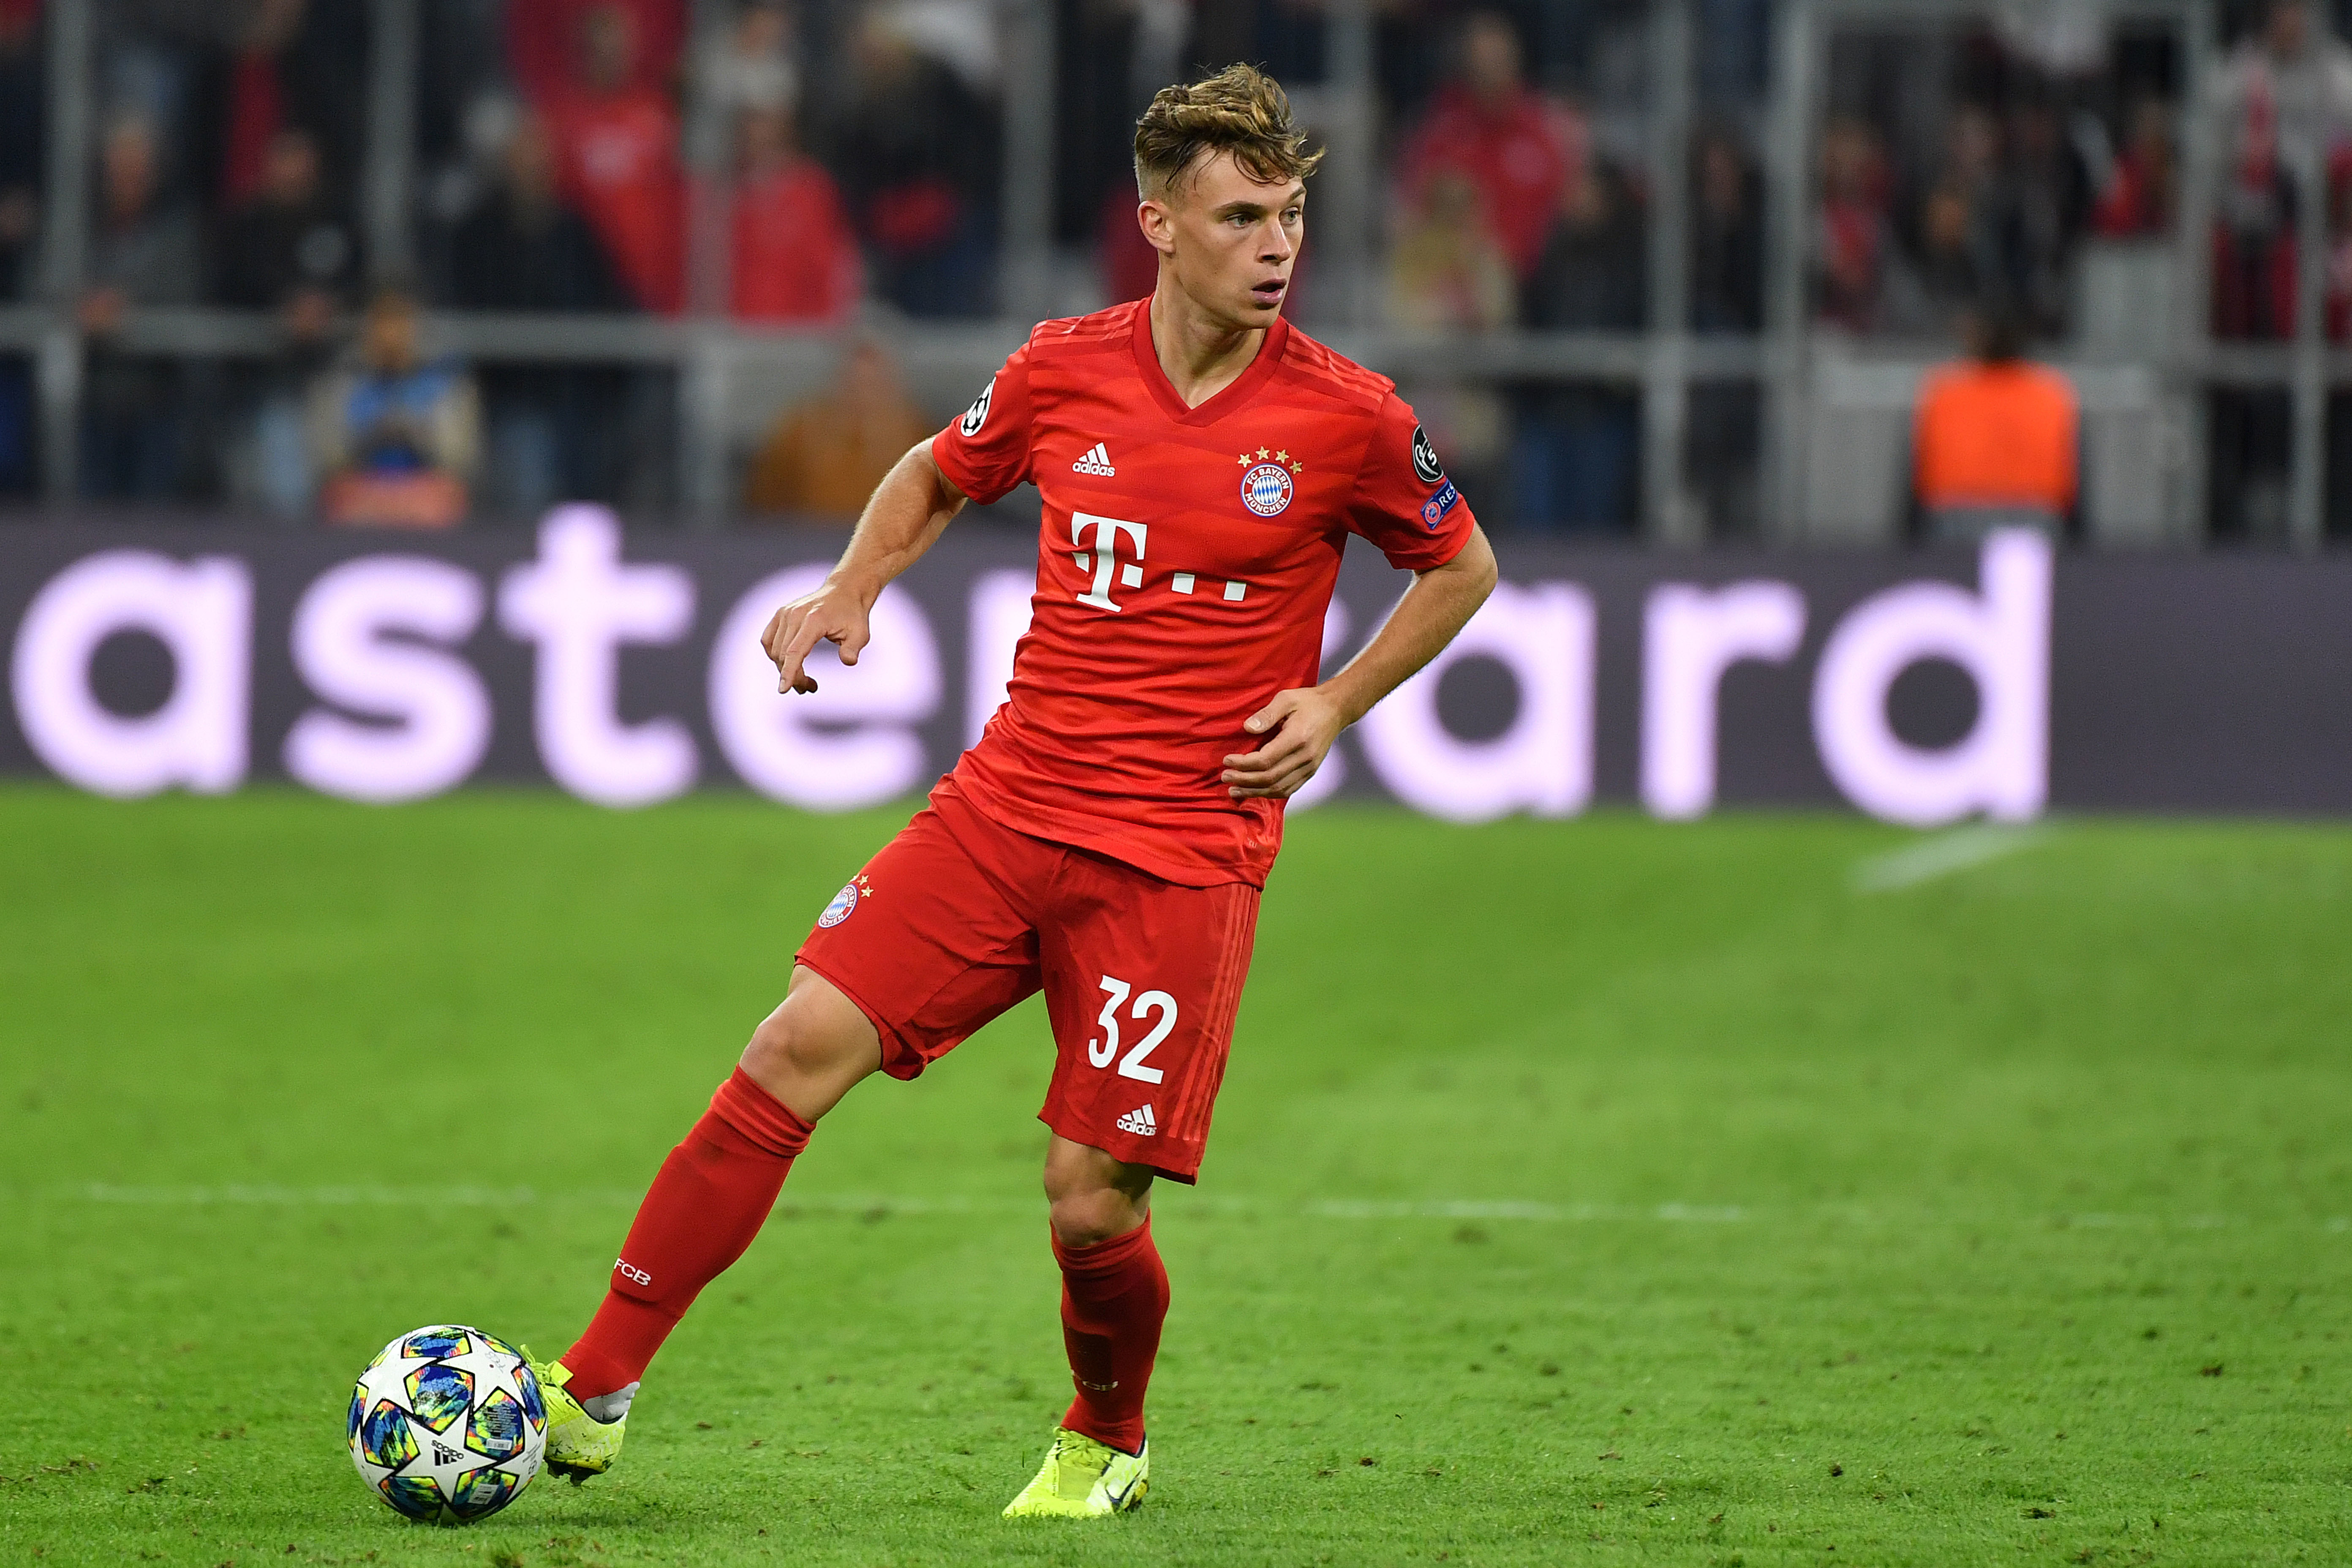 Joshua Kimmich is the key to Bayern's revitalized midfield